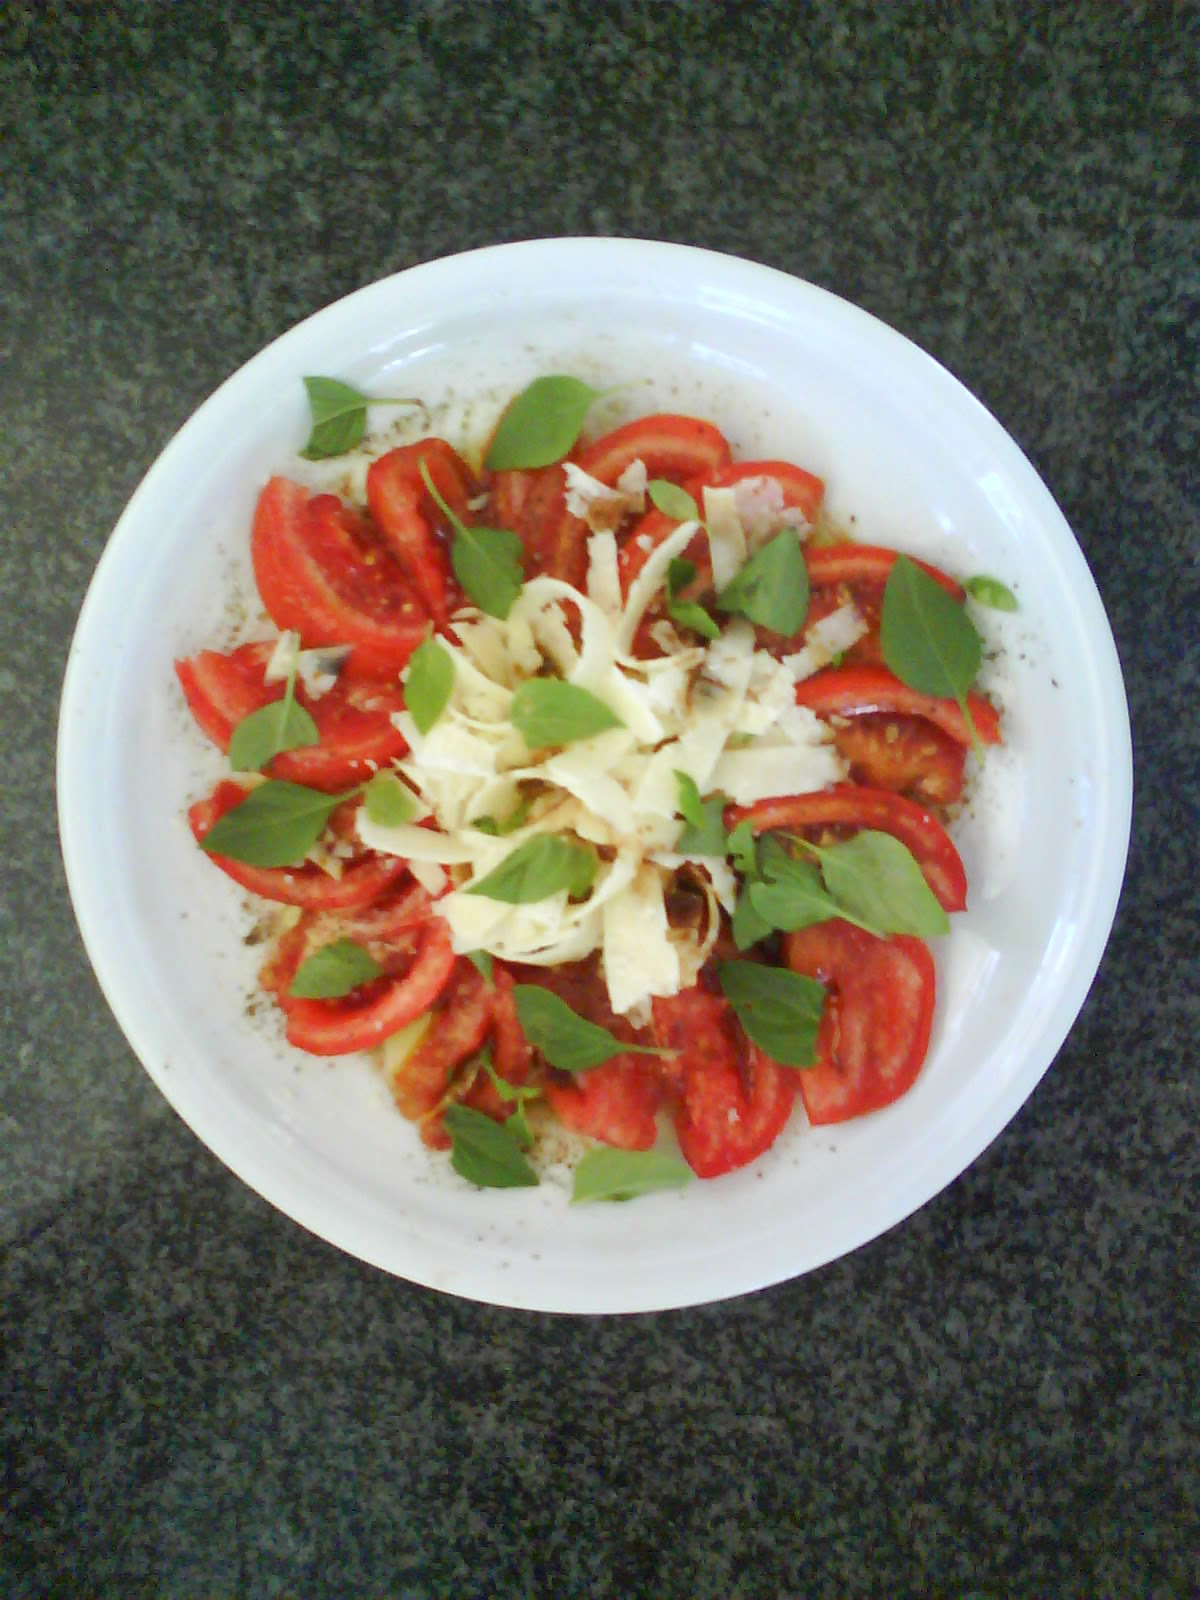 Tomato and pecorino salad